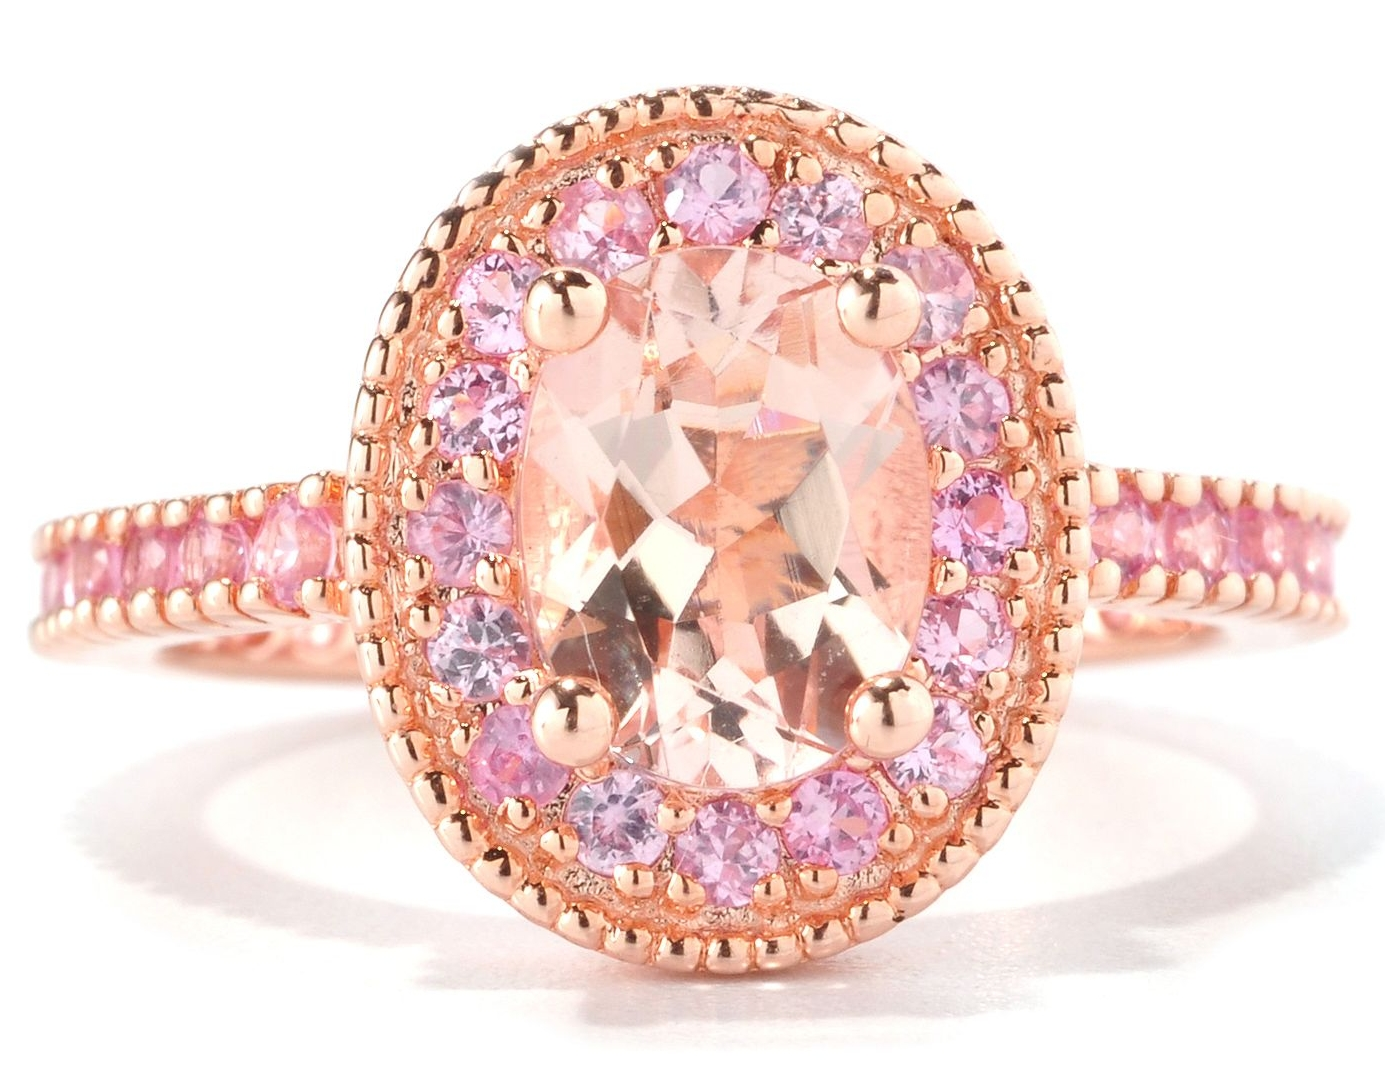 European Engagement Ring Oval Morganite Pink Sapphire Halo 14K